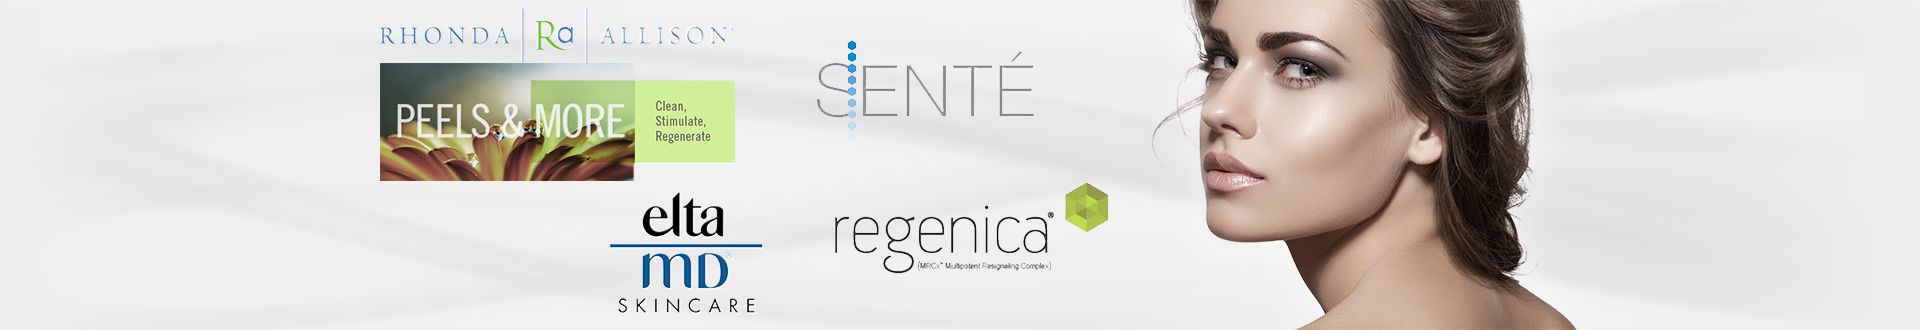 Regenica, Sente, Rhonda Allison, Elta MD